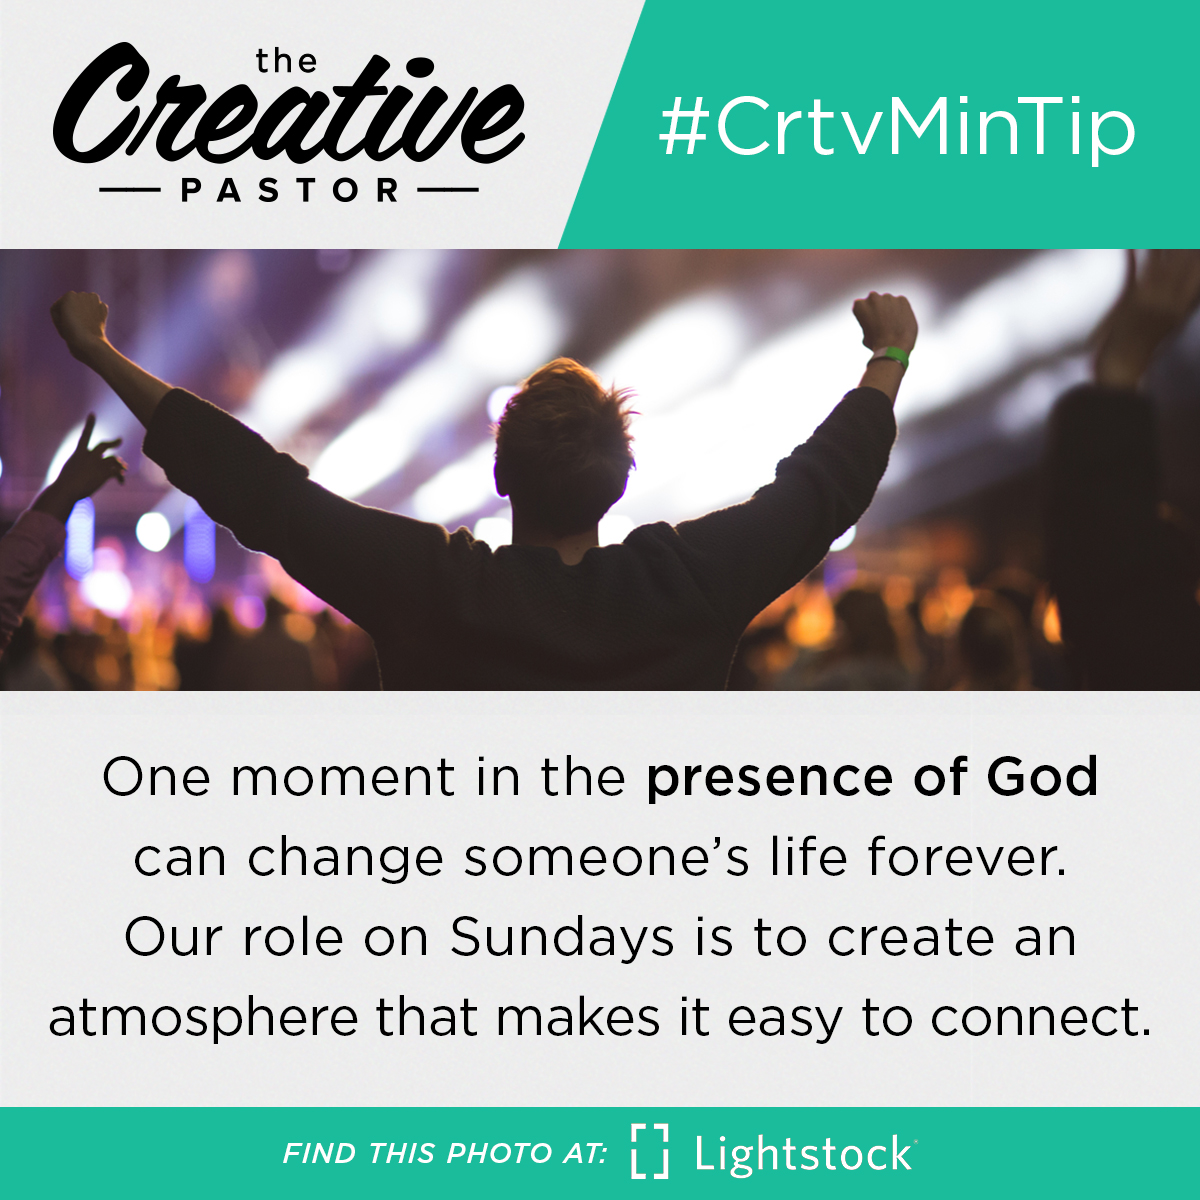 #CrtvMinTip: One moment in the presence of God can change someone's life forever. Our role on Sundays is to create an atmosphere that makes it easy to connect.